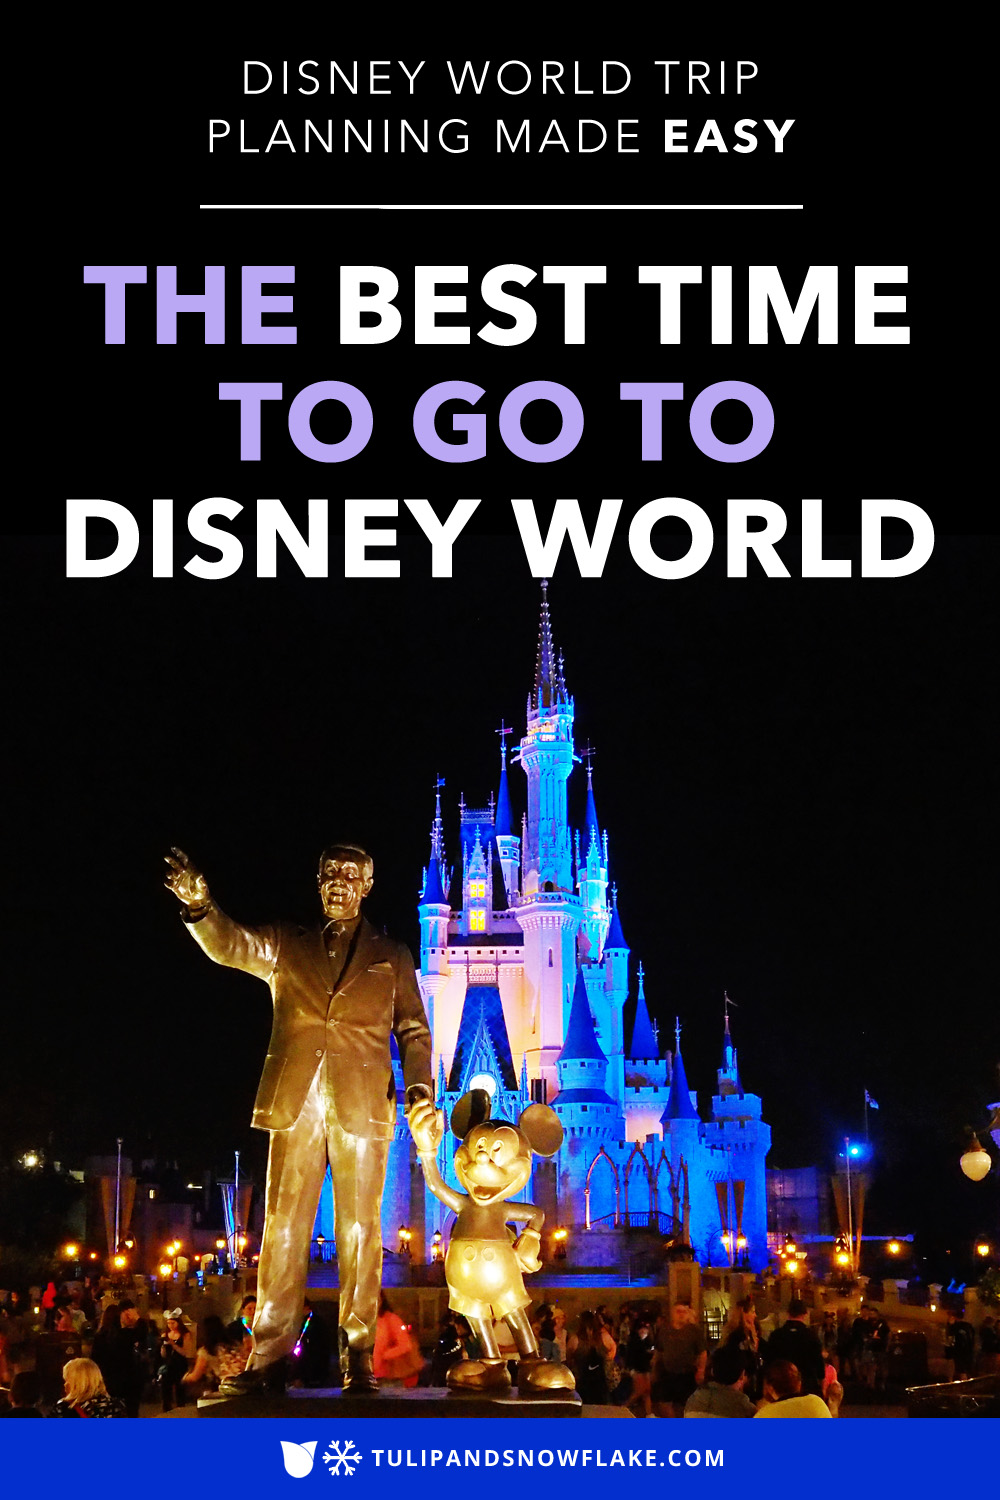 The best time to go to Disney World